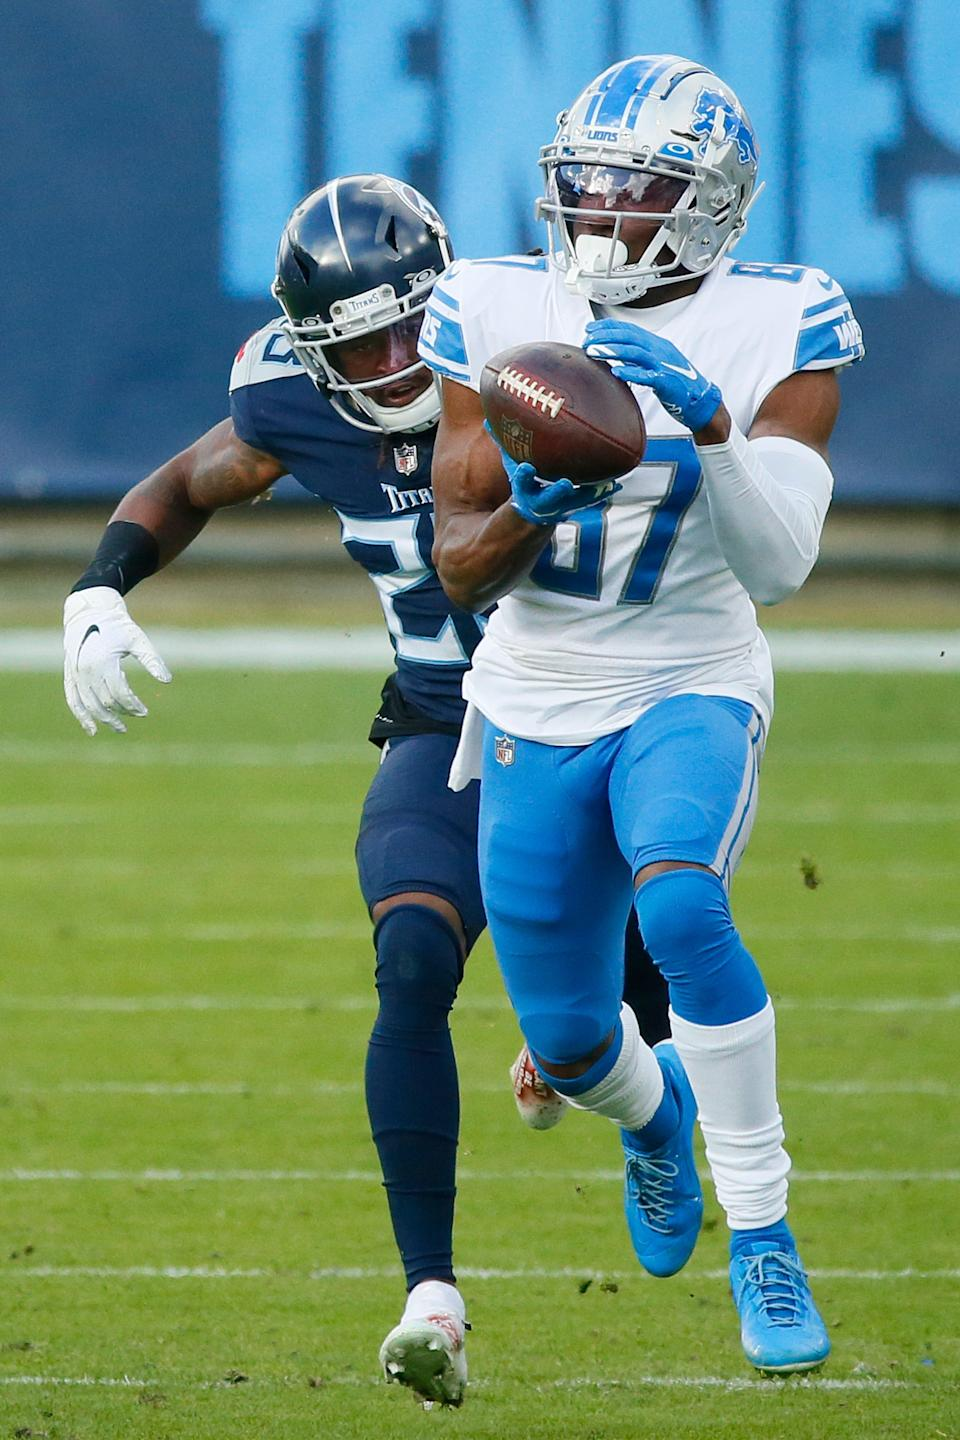 Wide receiver Quintez Cephus (87) of the Detroit Lions completes a reception over cornerback Tye Smith (23) of the Tennessee Titans in the fourth quarter of the game at Nissan Stadium on Dec. 20, 2020 in Nashville, Tennessee.